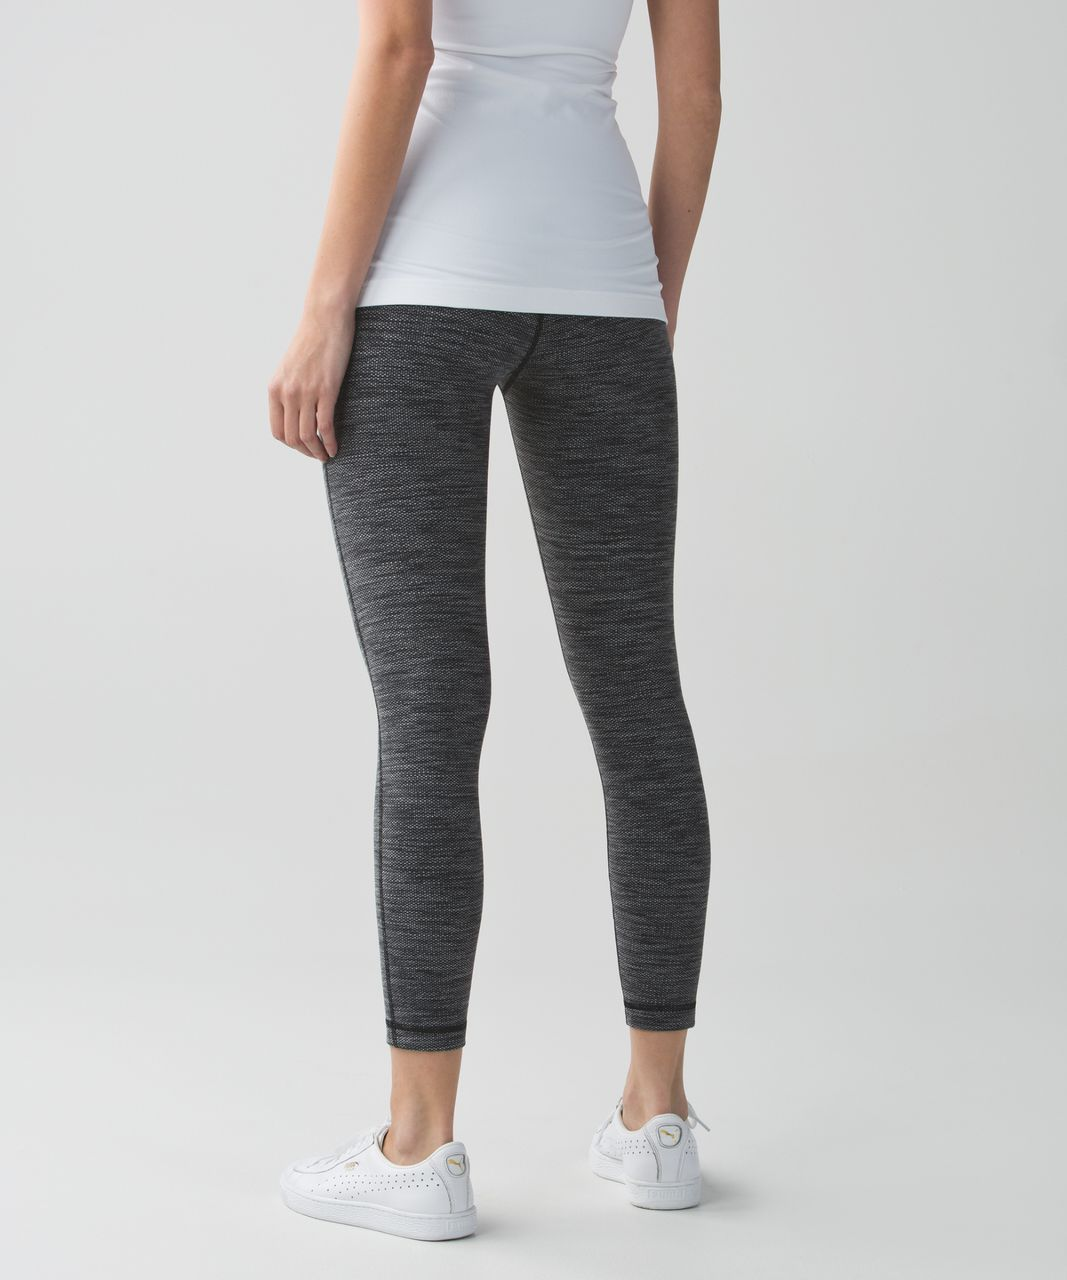 Lululemon High Times Pant - Diamond Jacquard Space Dye Black Slate